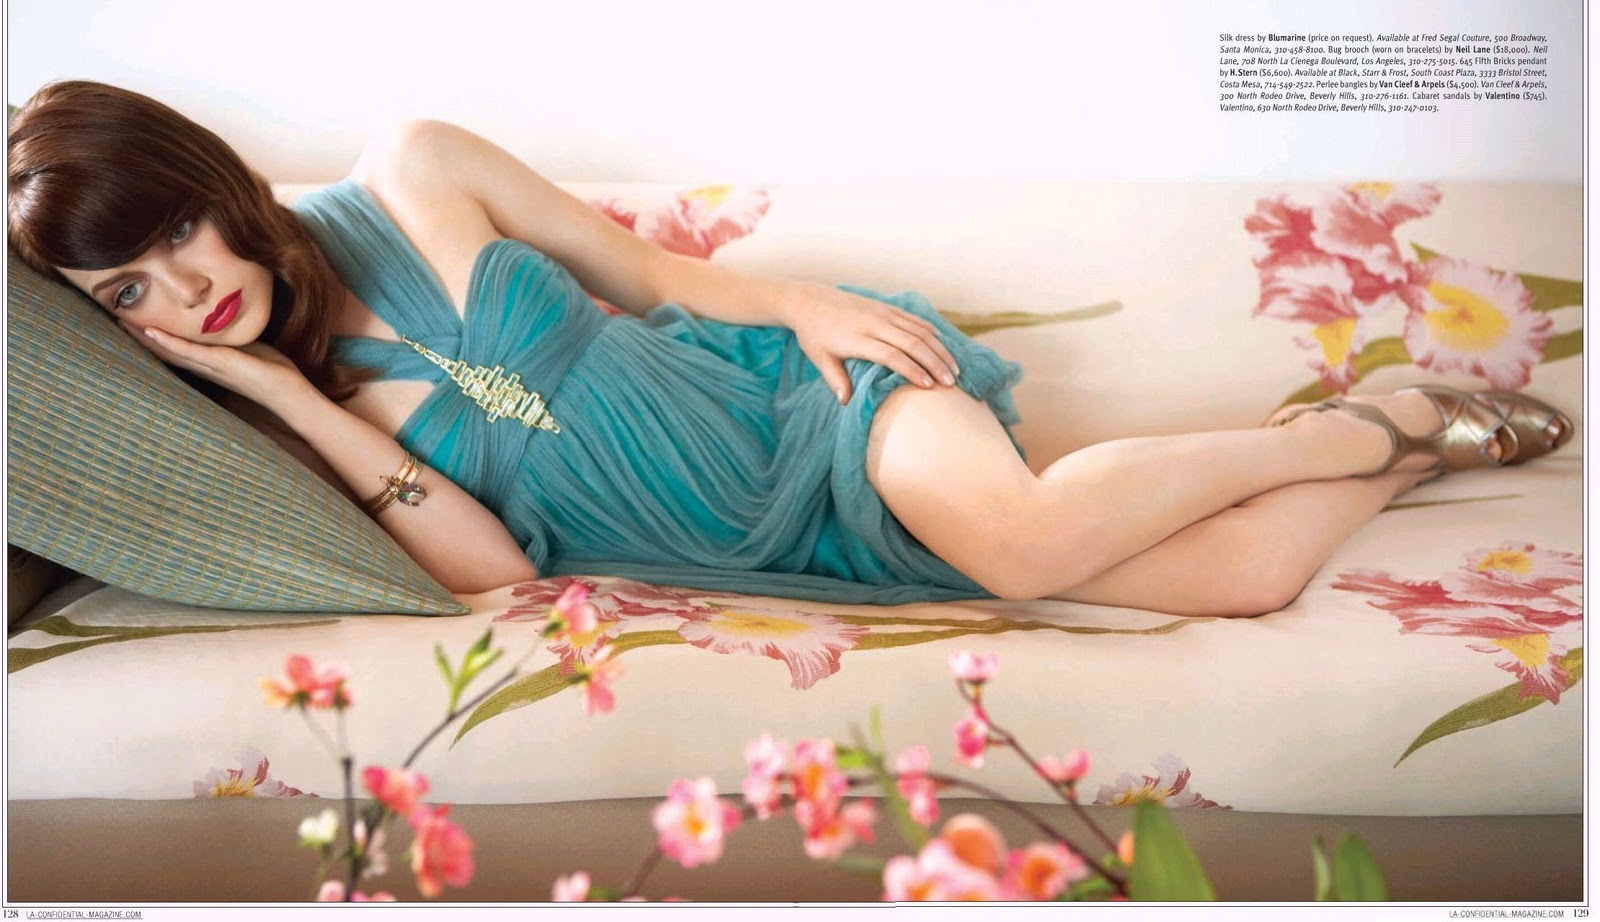 http://2.bp.blogspot.com/-mJByF4i6TzE/TaoQJ3fHIaI/AAAAAAAAAwA/7WkCpYINQKE/s1600/Emma-Stone-Photo-Wallpaper-Actress-3.jpg